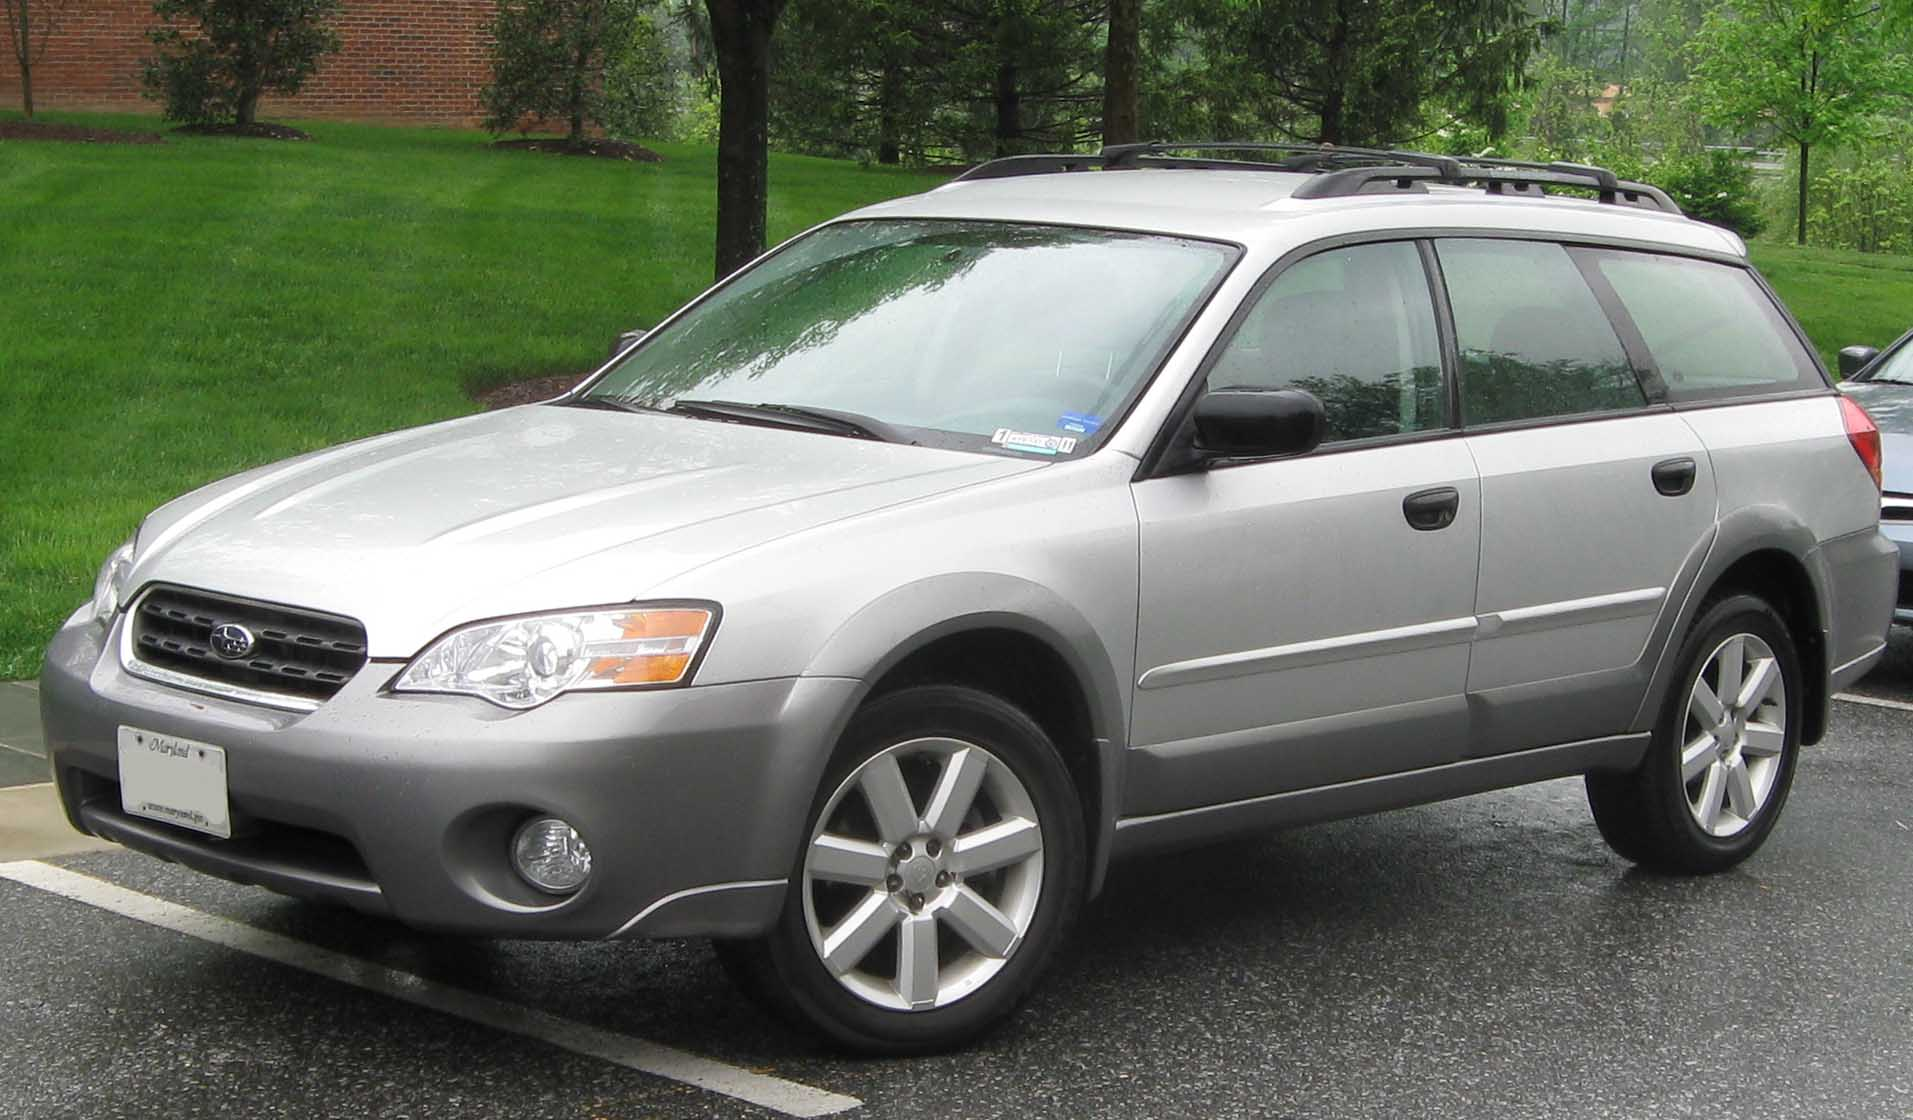 Subaru Outback Tractor & Construction Plant Wiki